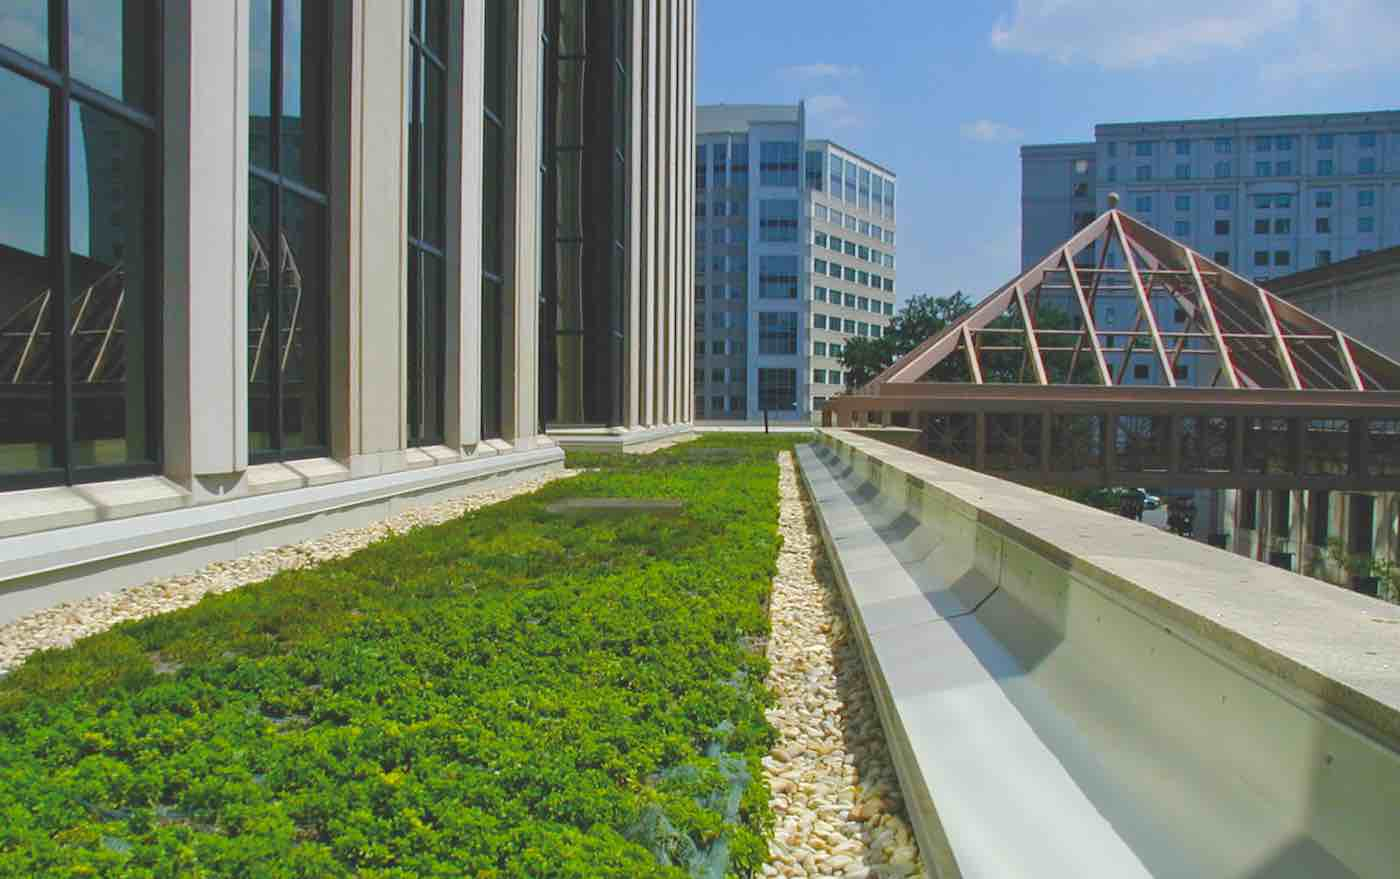 Nyc Passes Bold New Legislation Requiring Green Roofs On